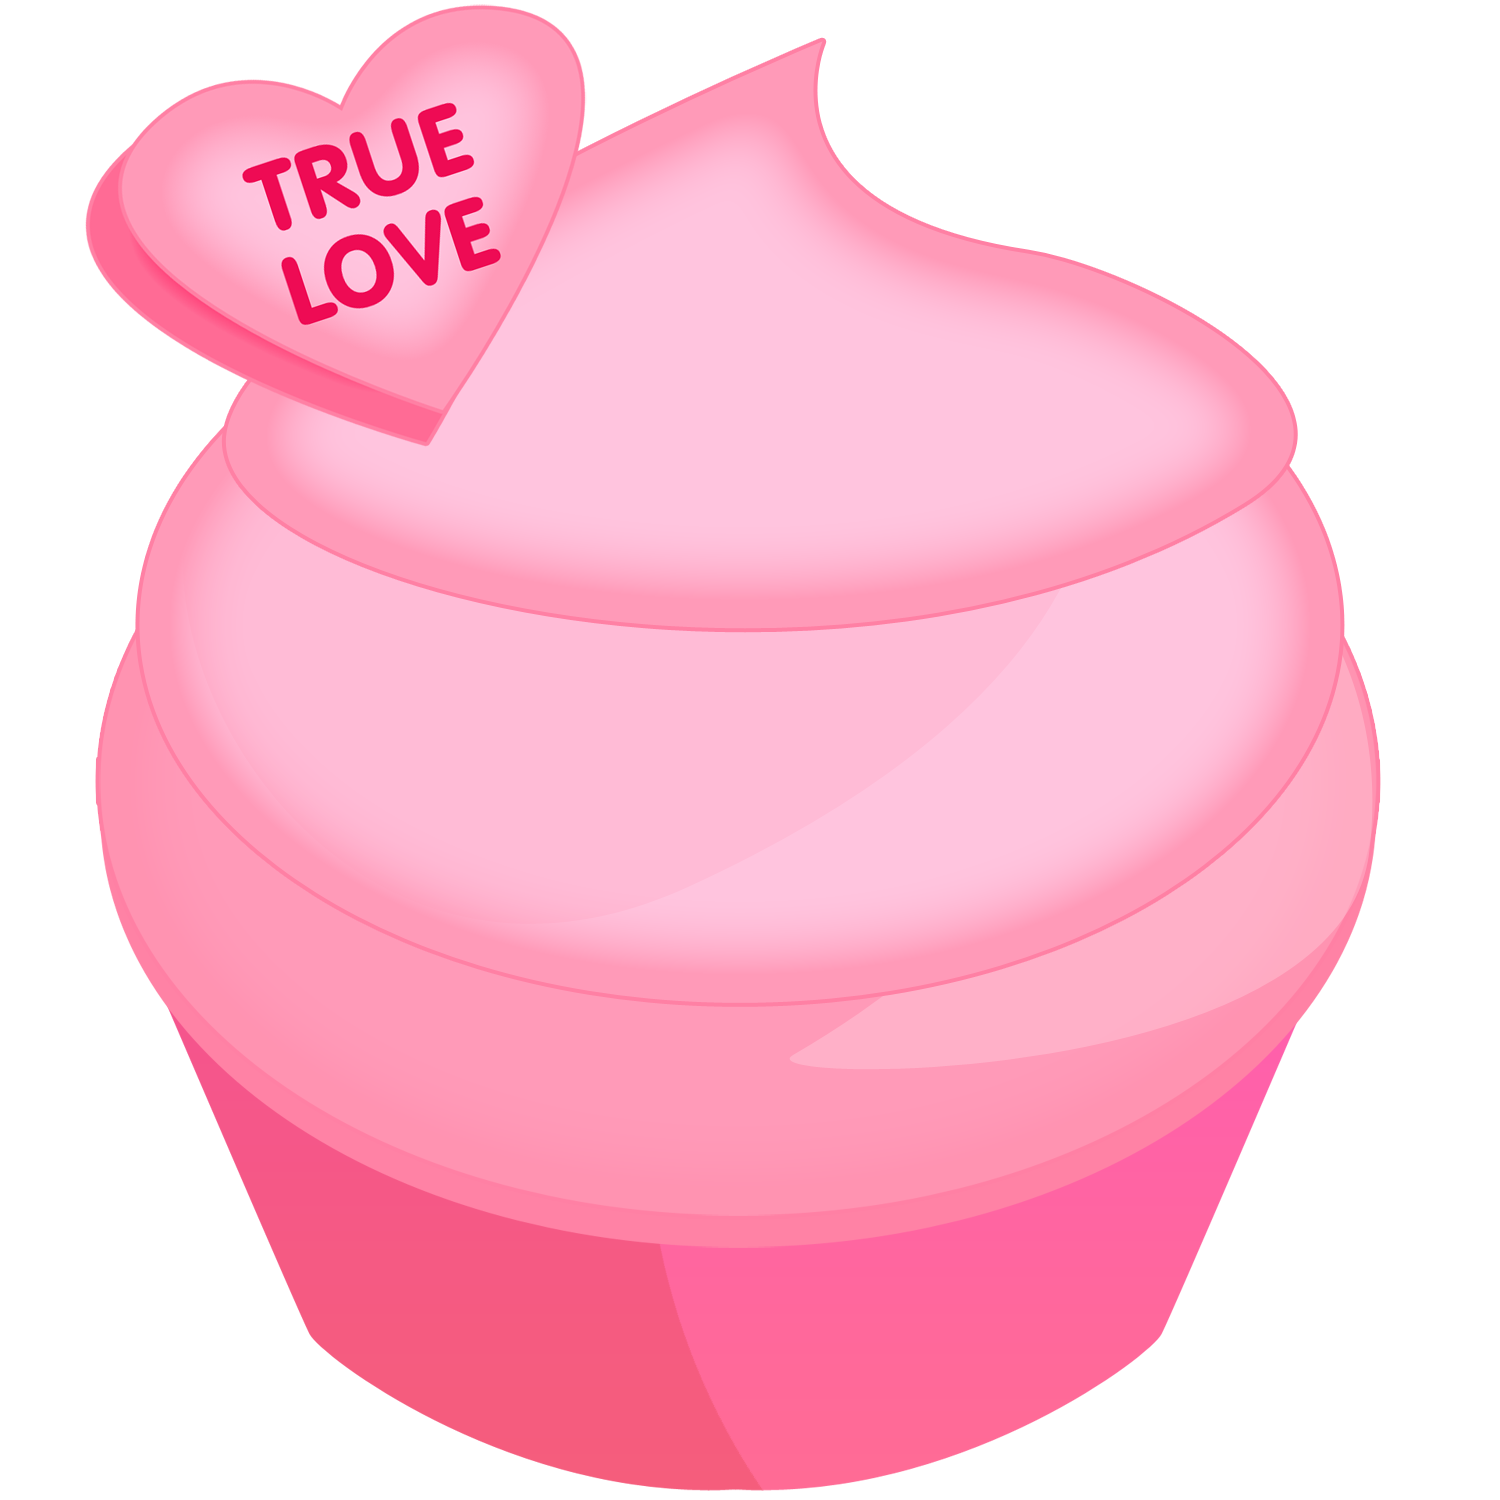 Free valentine cliparts download. Cake clipart heart vector download